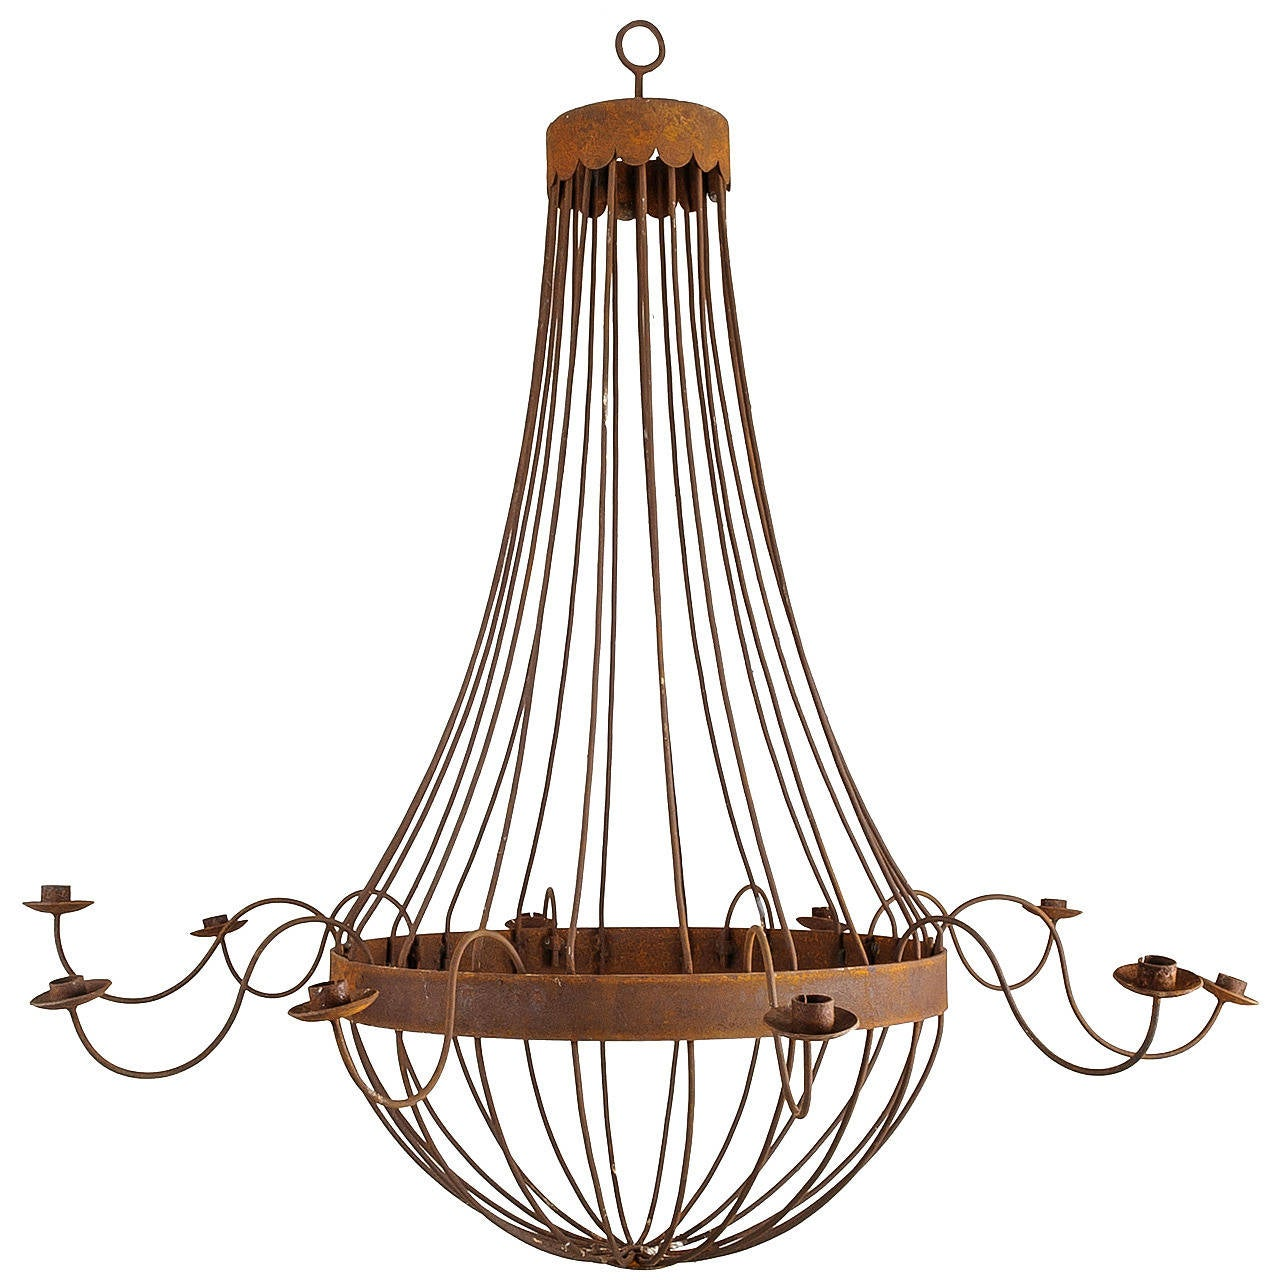 Grand French Bell Iron Chandelier with Ten Candles, Rusted Finish